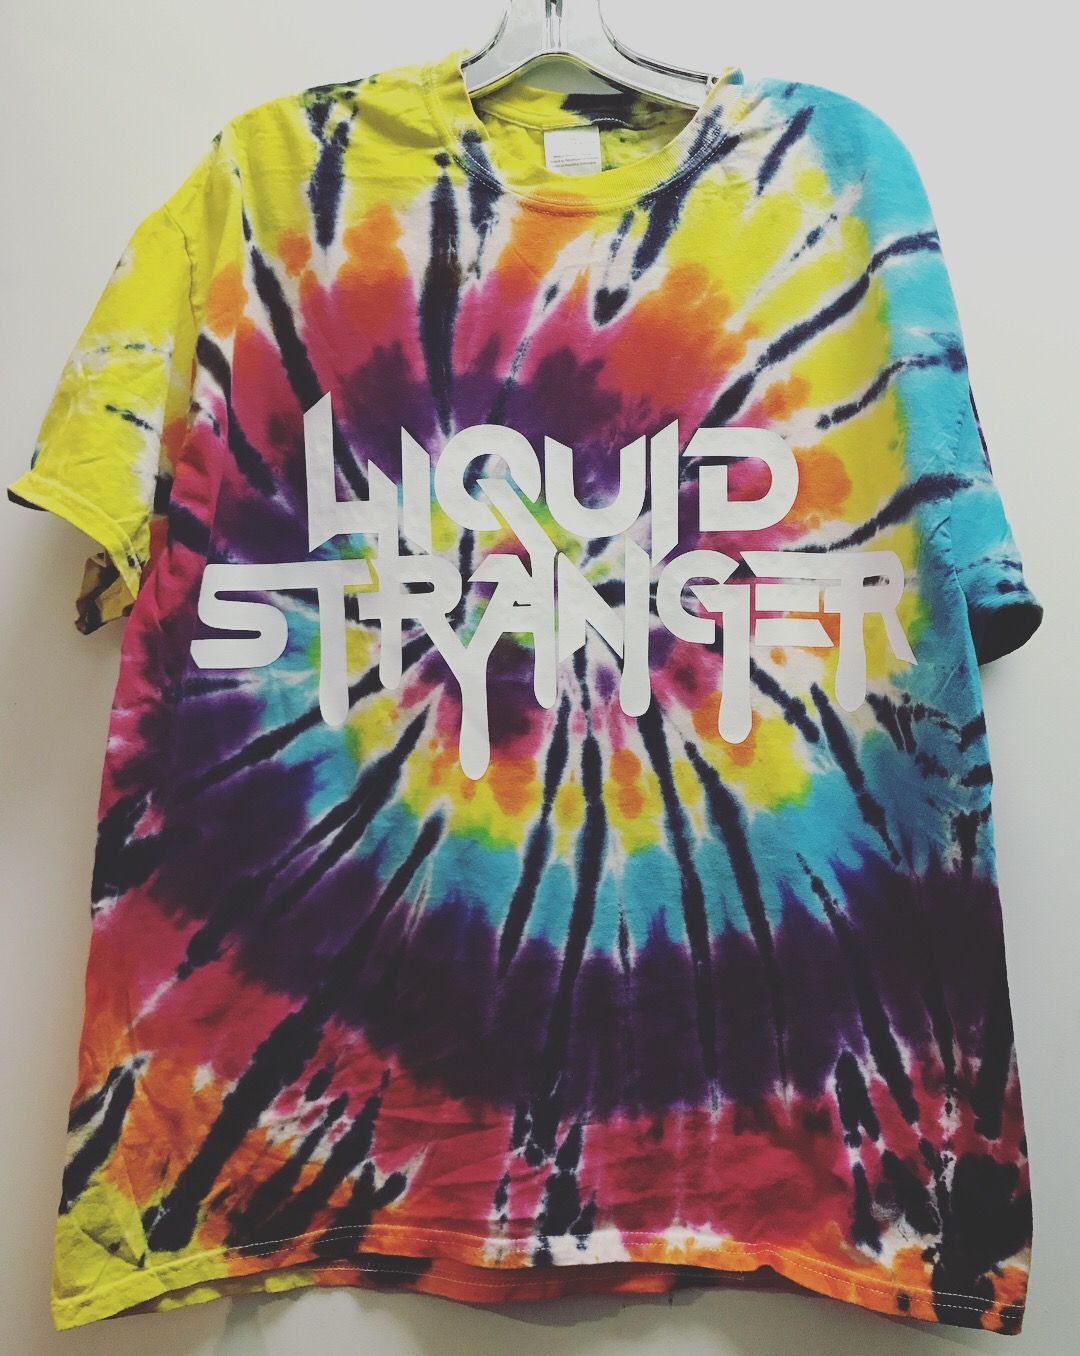 130abf67a4c Liquid Stranger Tie Dye T-shirt Festival clothing Rave outfit Raver Rave  girl Dubstep Edm Electric forest Electric daisy carnival EDCLV edc  Insomniac ...